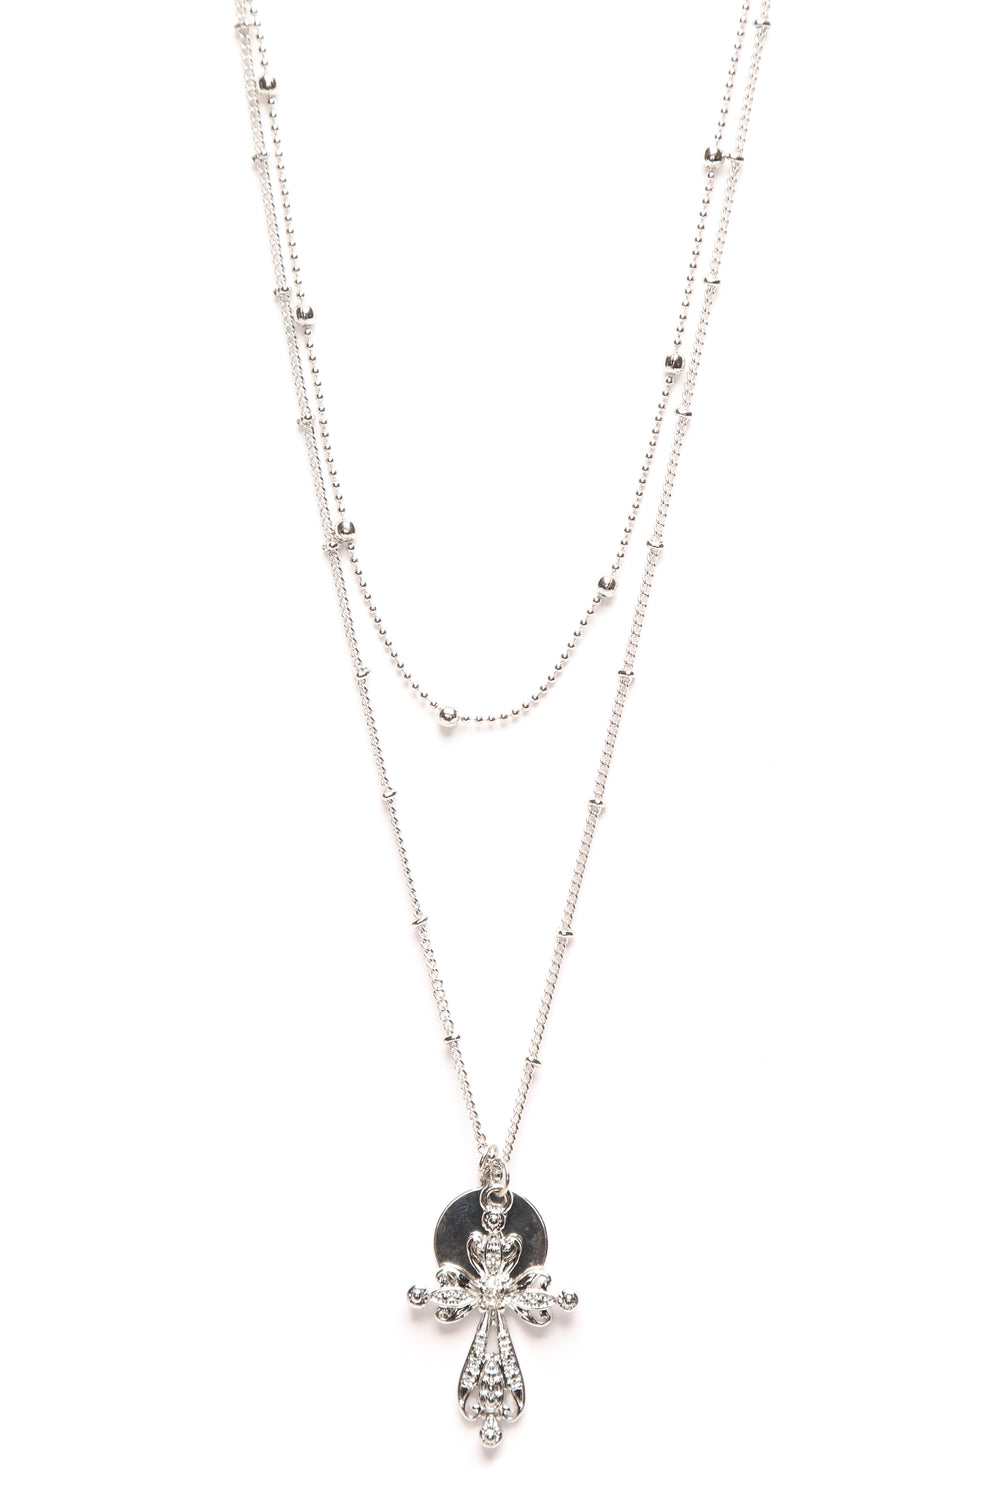 A Cross The Room Necklace - Silver